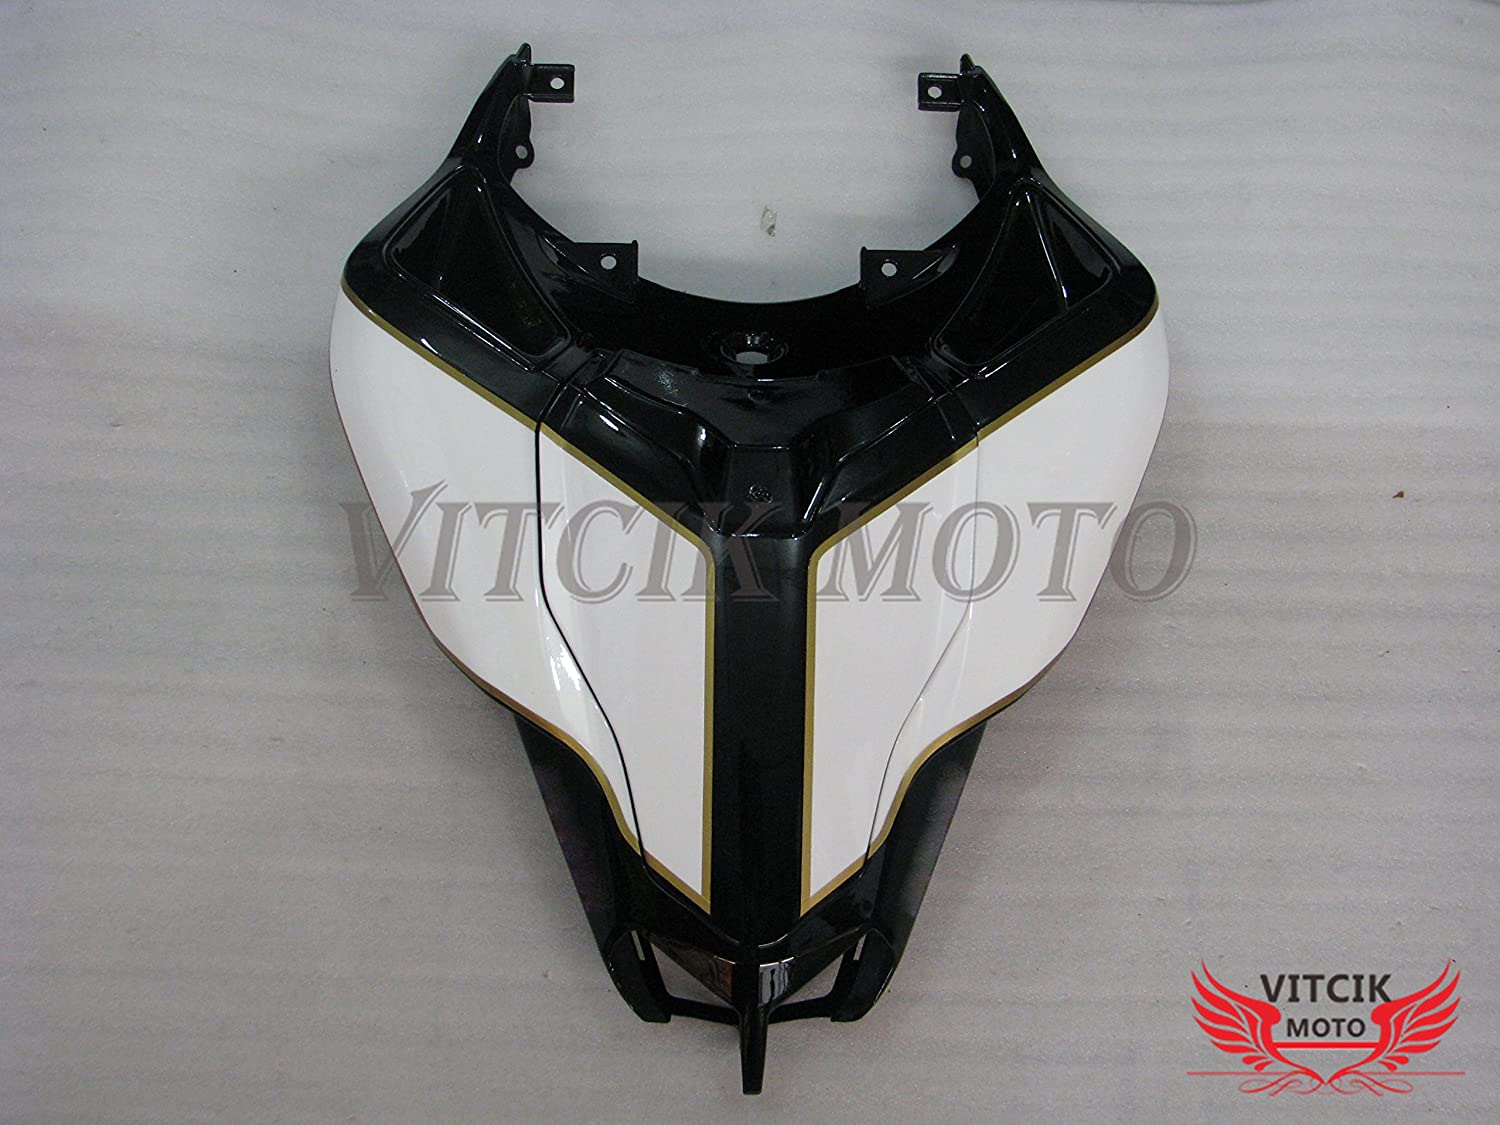 Plastic ABS Injection Mold Complete Motorcycle Body Aftermarket Bodywork Frame Black /& White VITCIK Fairing Kits Fit for DUCATI 1098 848 1198 2007 2008 2009 2010 2011 2012 A005